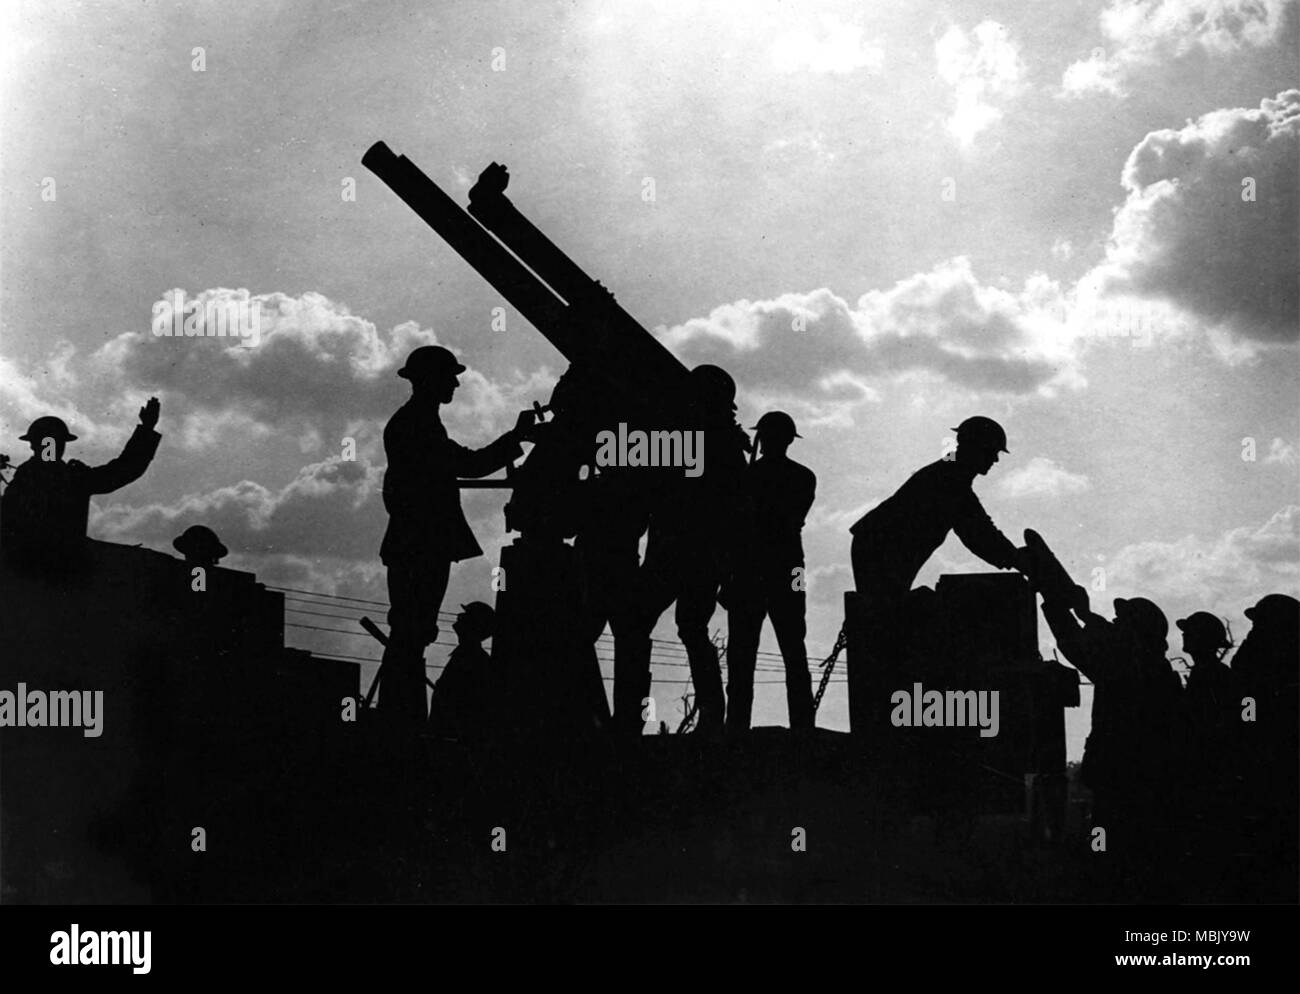 Silhouetted Artillery - Stock Image